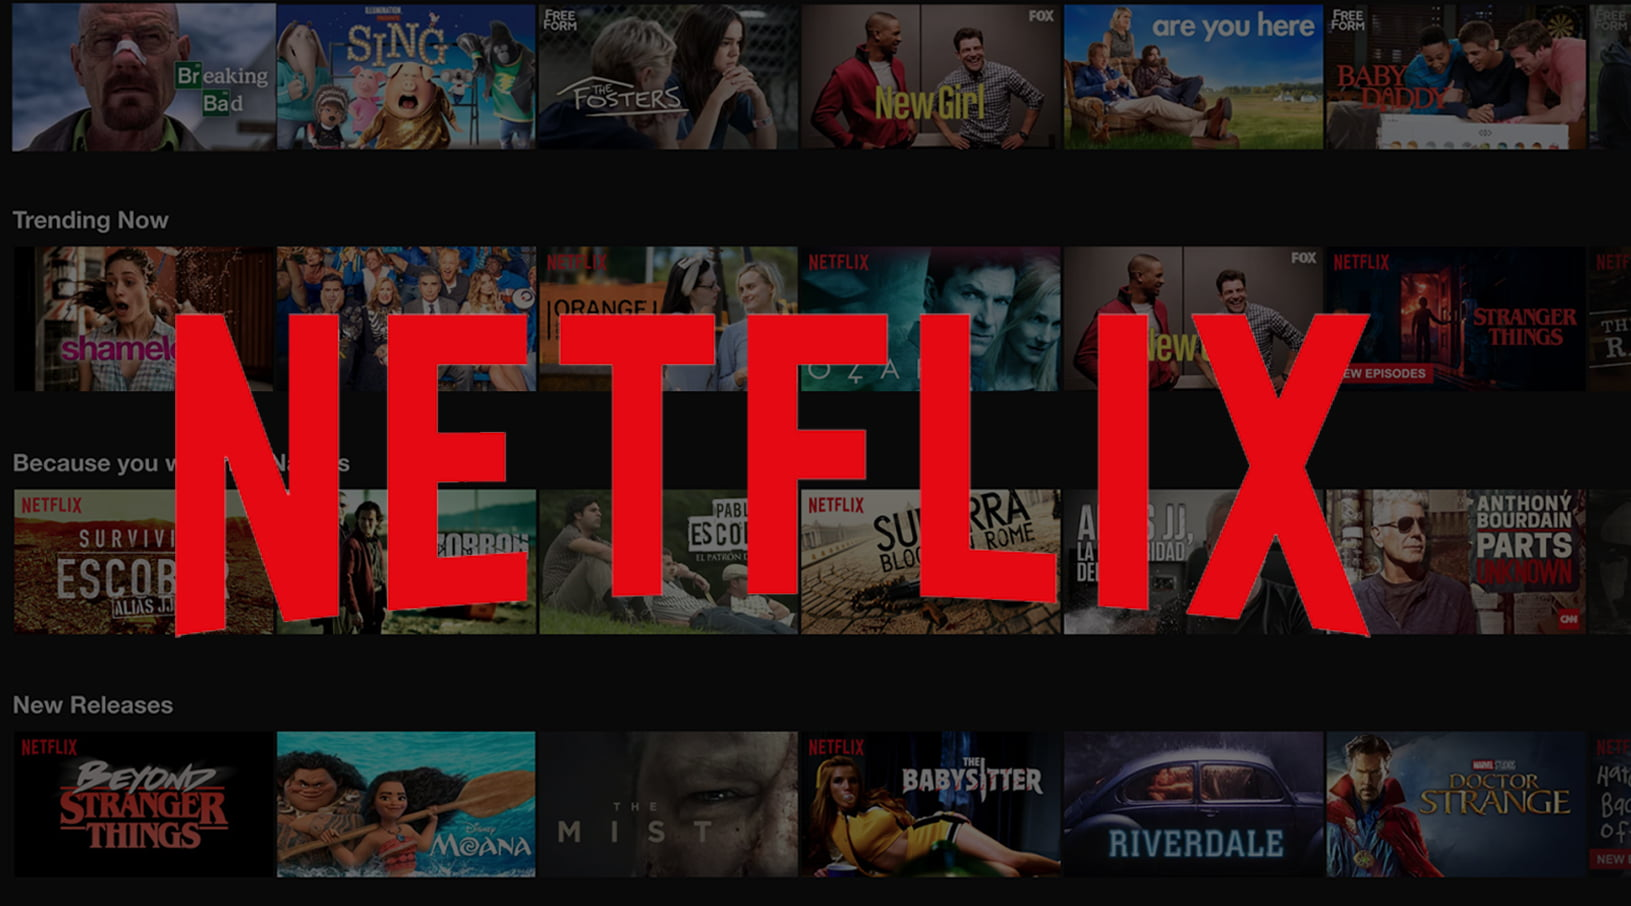 Netflix broke many records on mobile in November